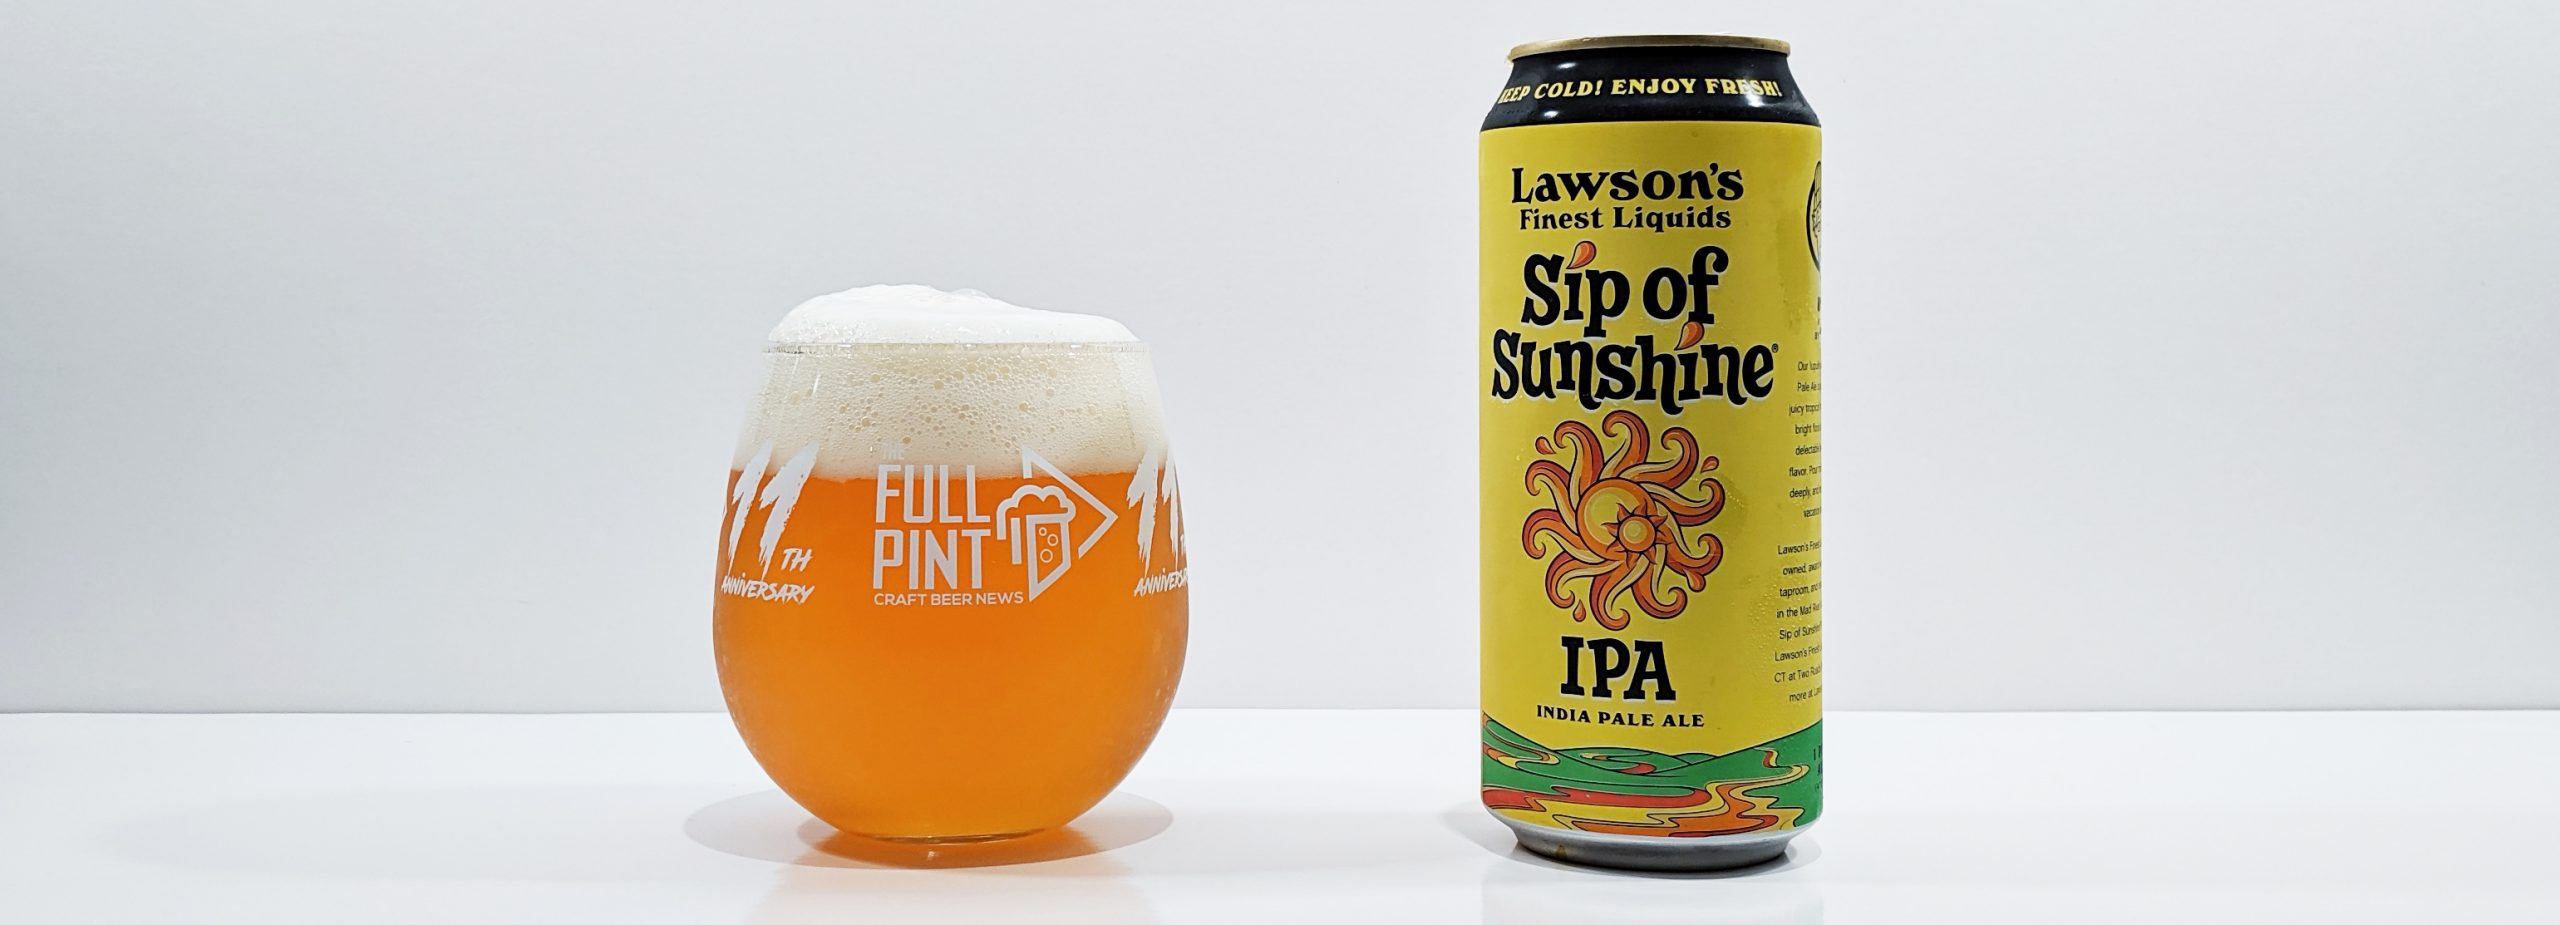 Lawson's Finest Liquids Sip of Sunshine IPA